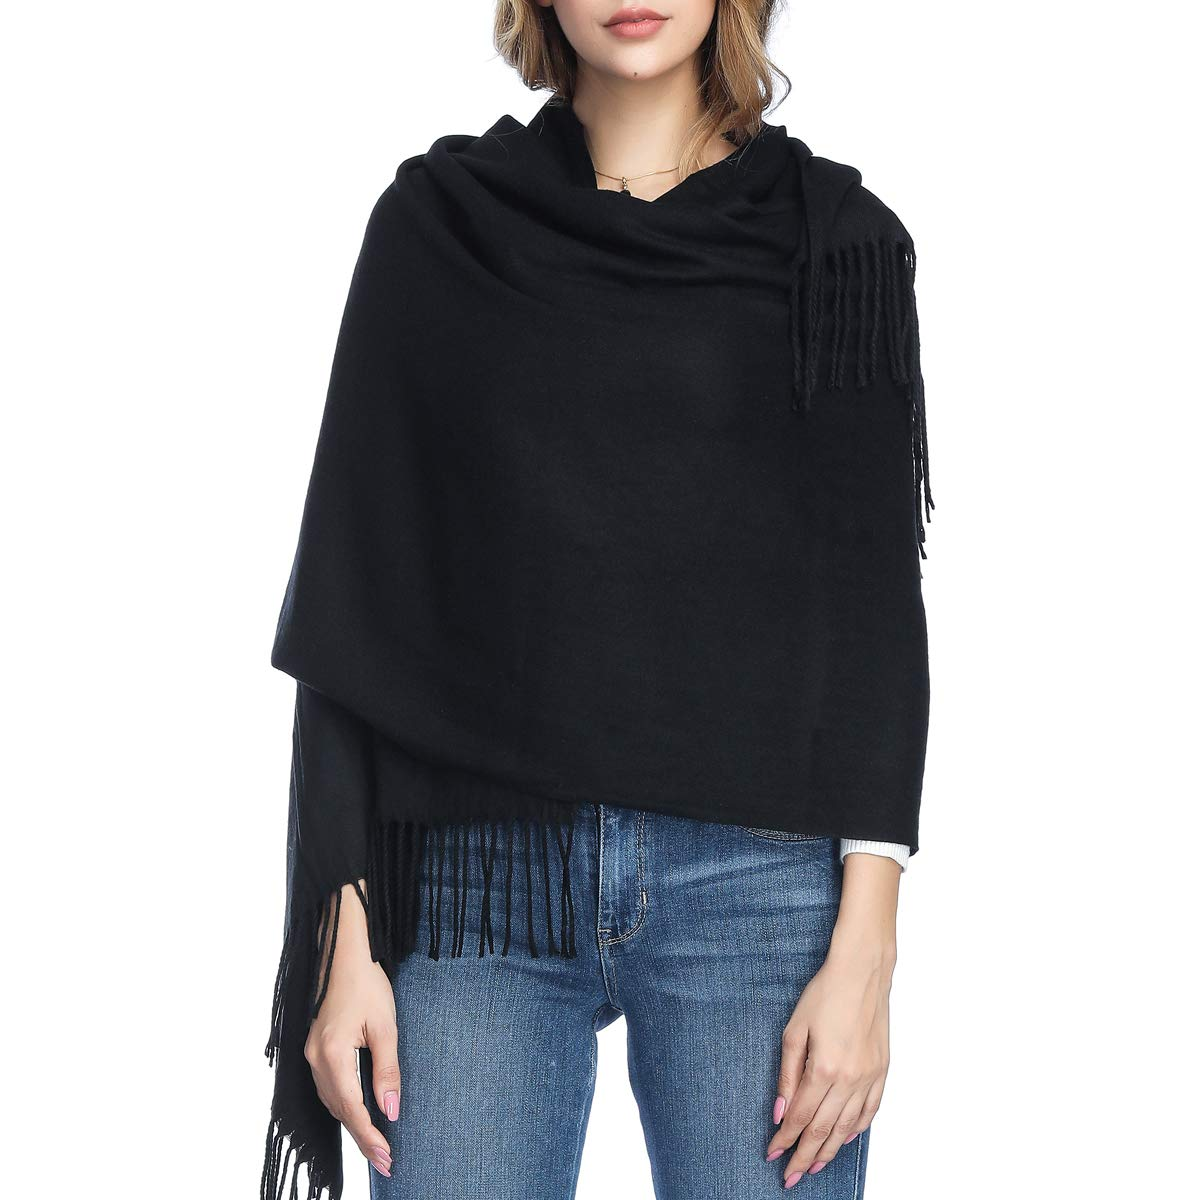 Extra Large Thick Soft Cashmere Wool Shawl Wraps for Women - PoilTreeWing Pashmina Scarf(Black)